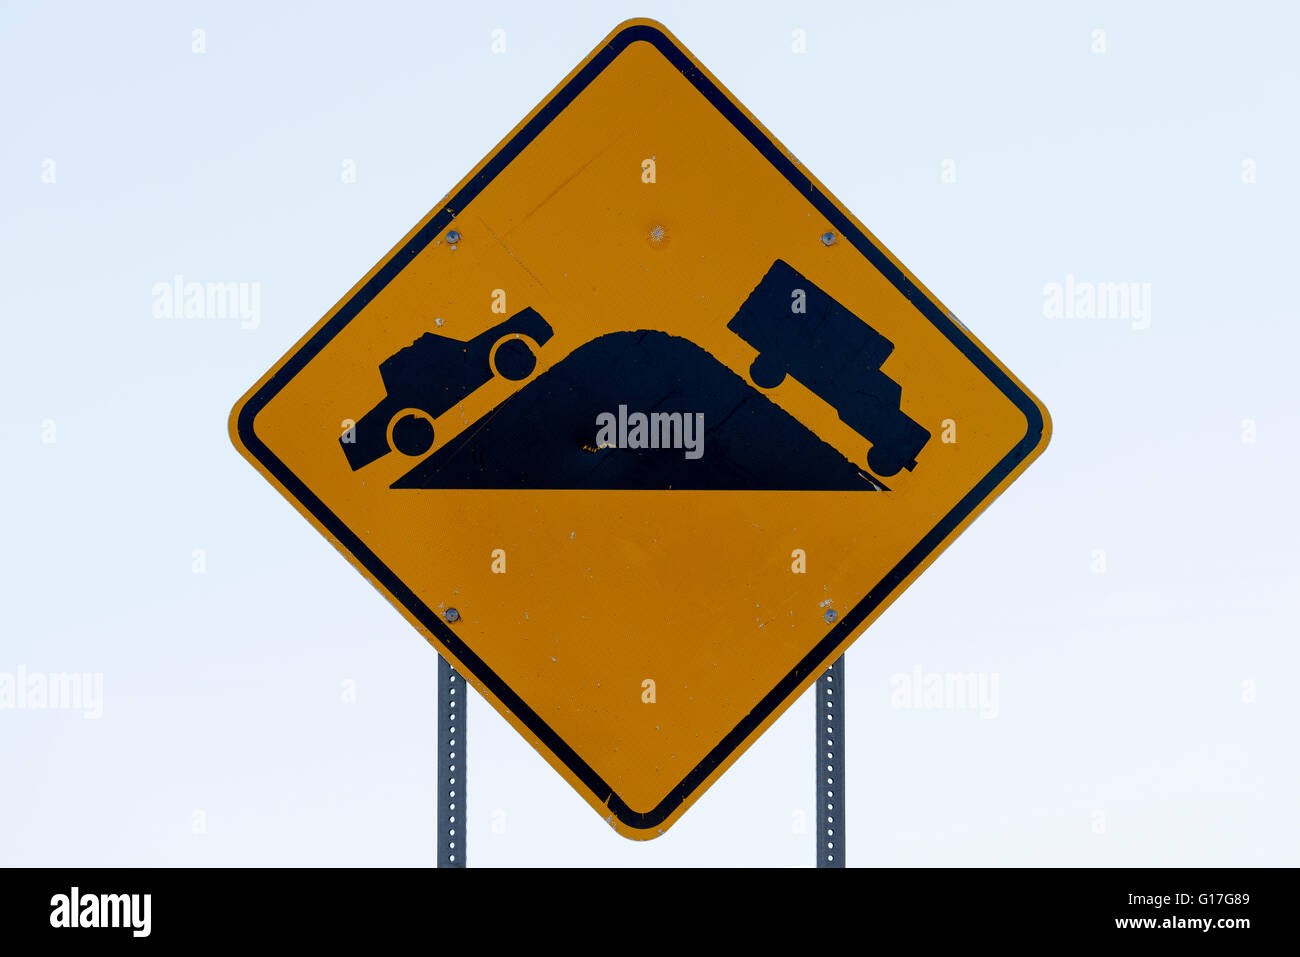 Restricted visability highway sign on Highway 550 at the Continental Divide in New Mexico. - Stock Image